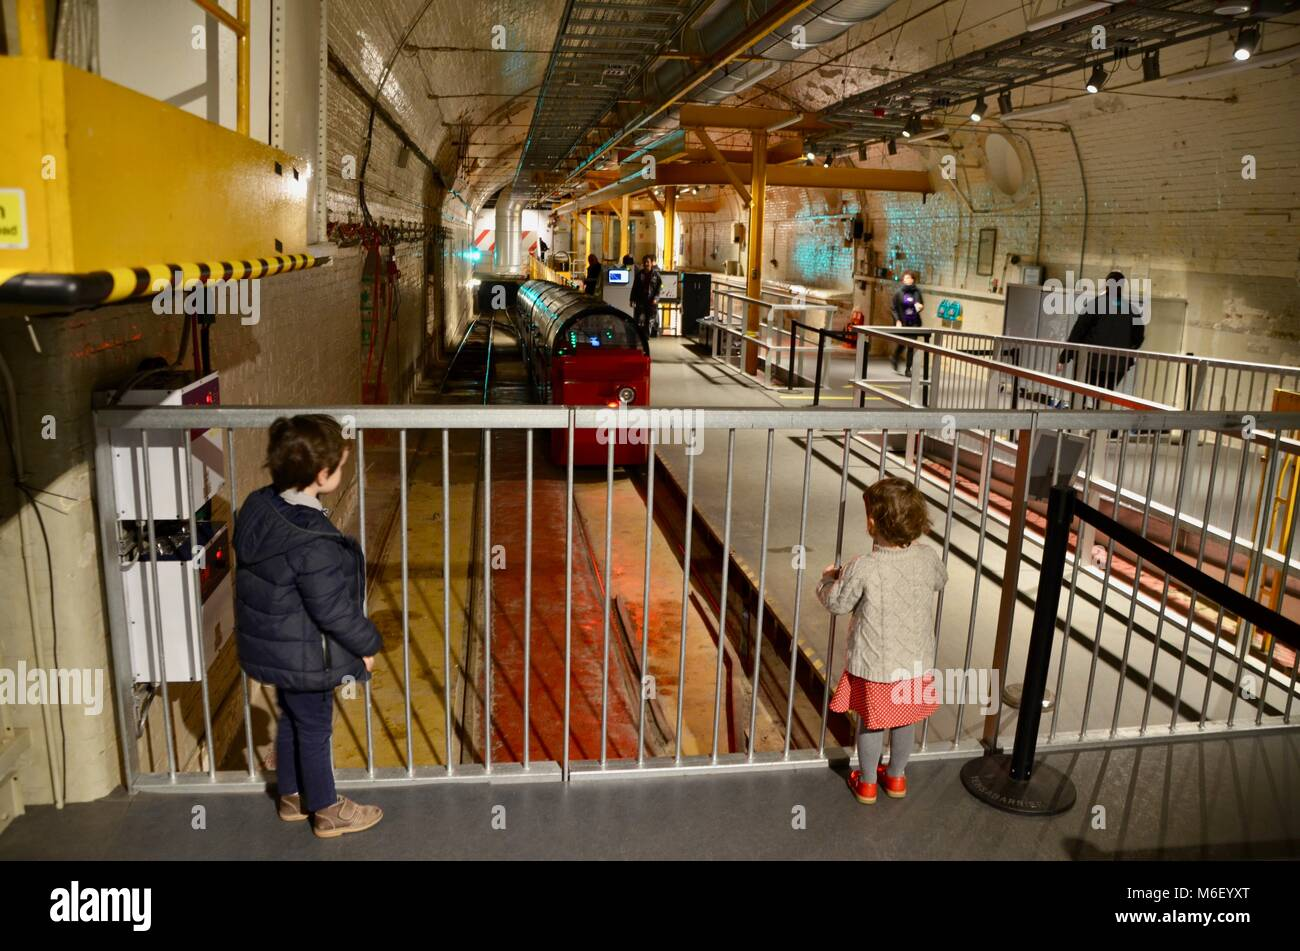 two children watch the train at postal museum mount pleasant north london england great britain - Stock Image